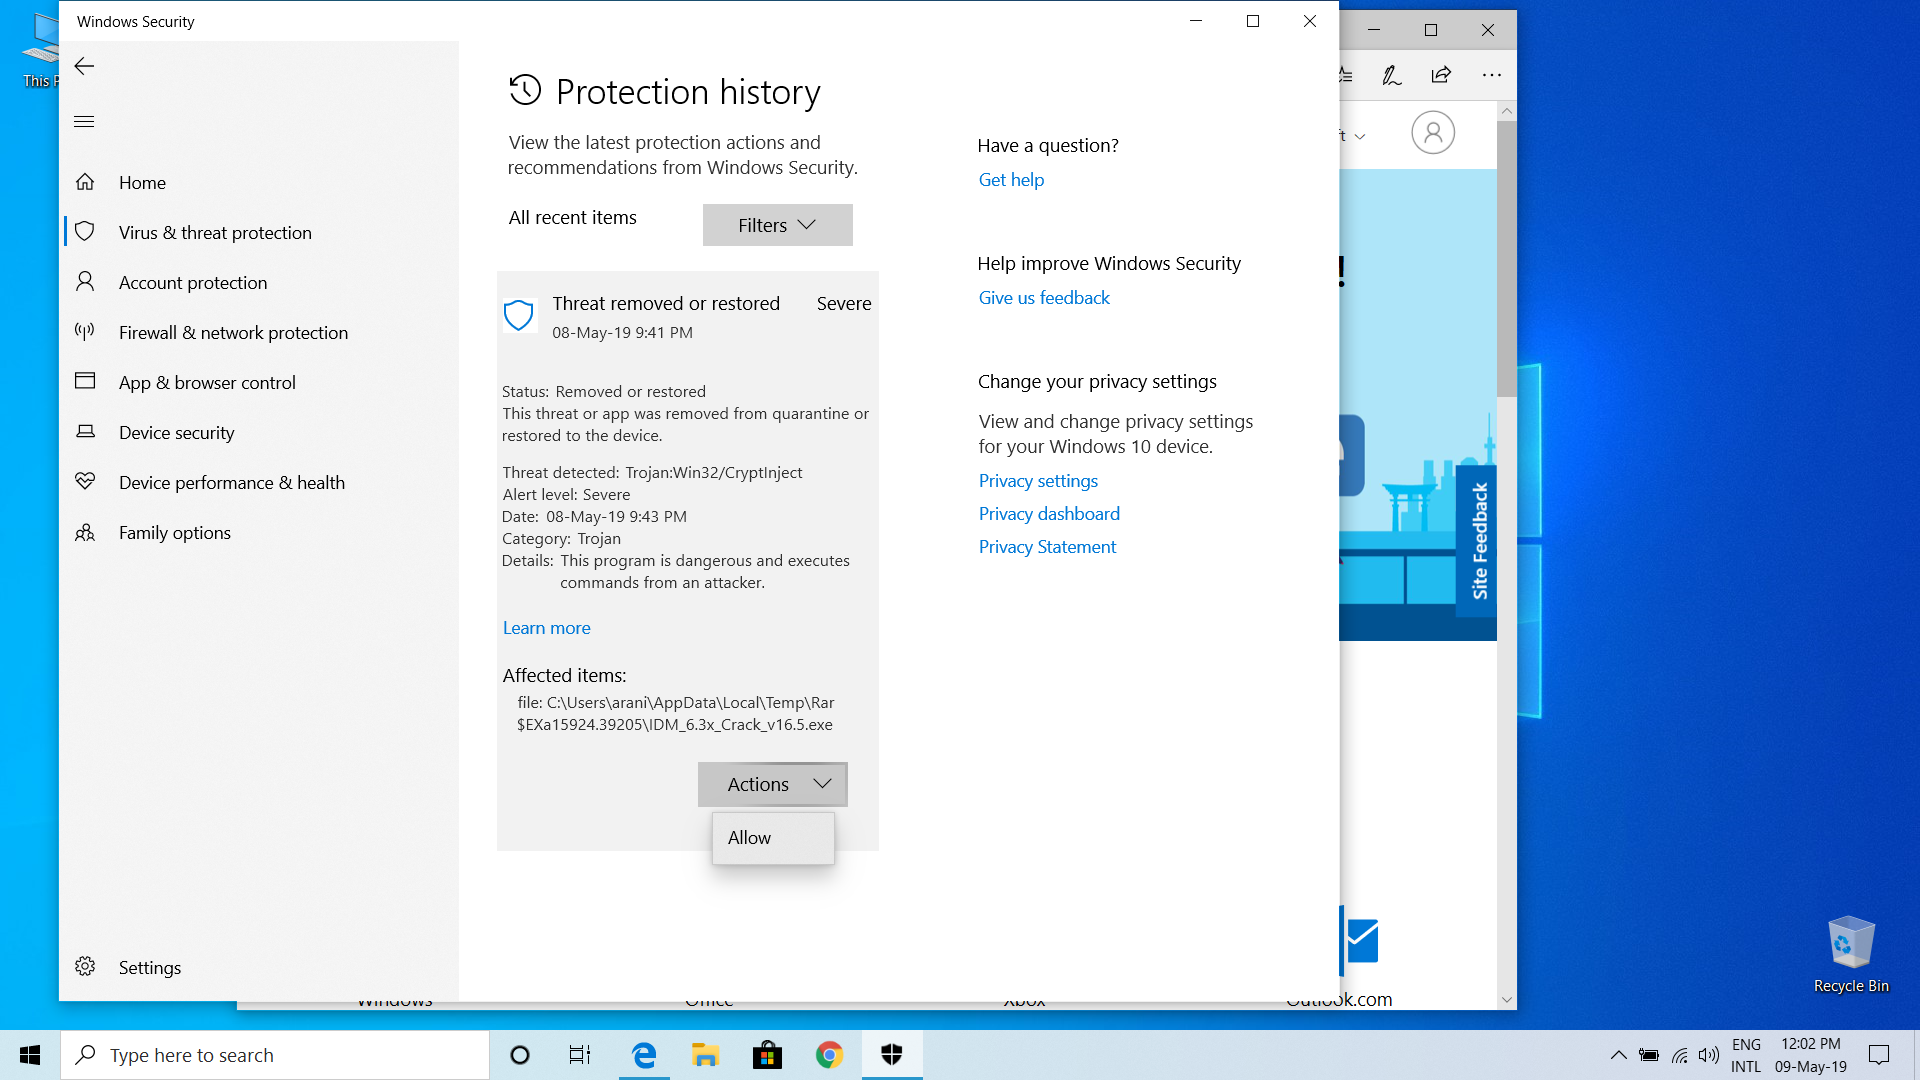 Unable to clear protection history manually in windows